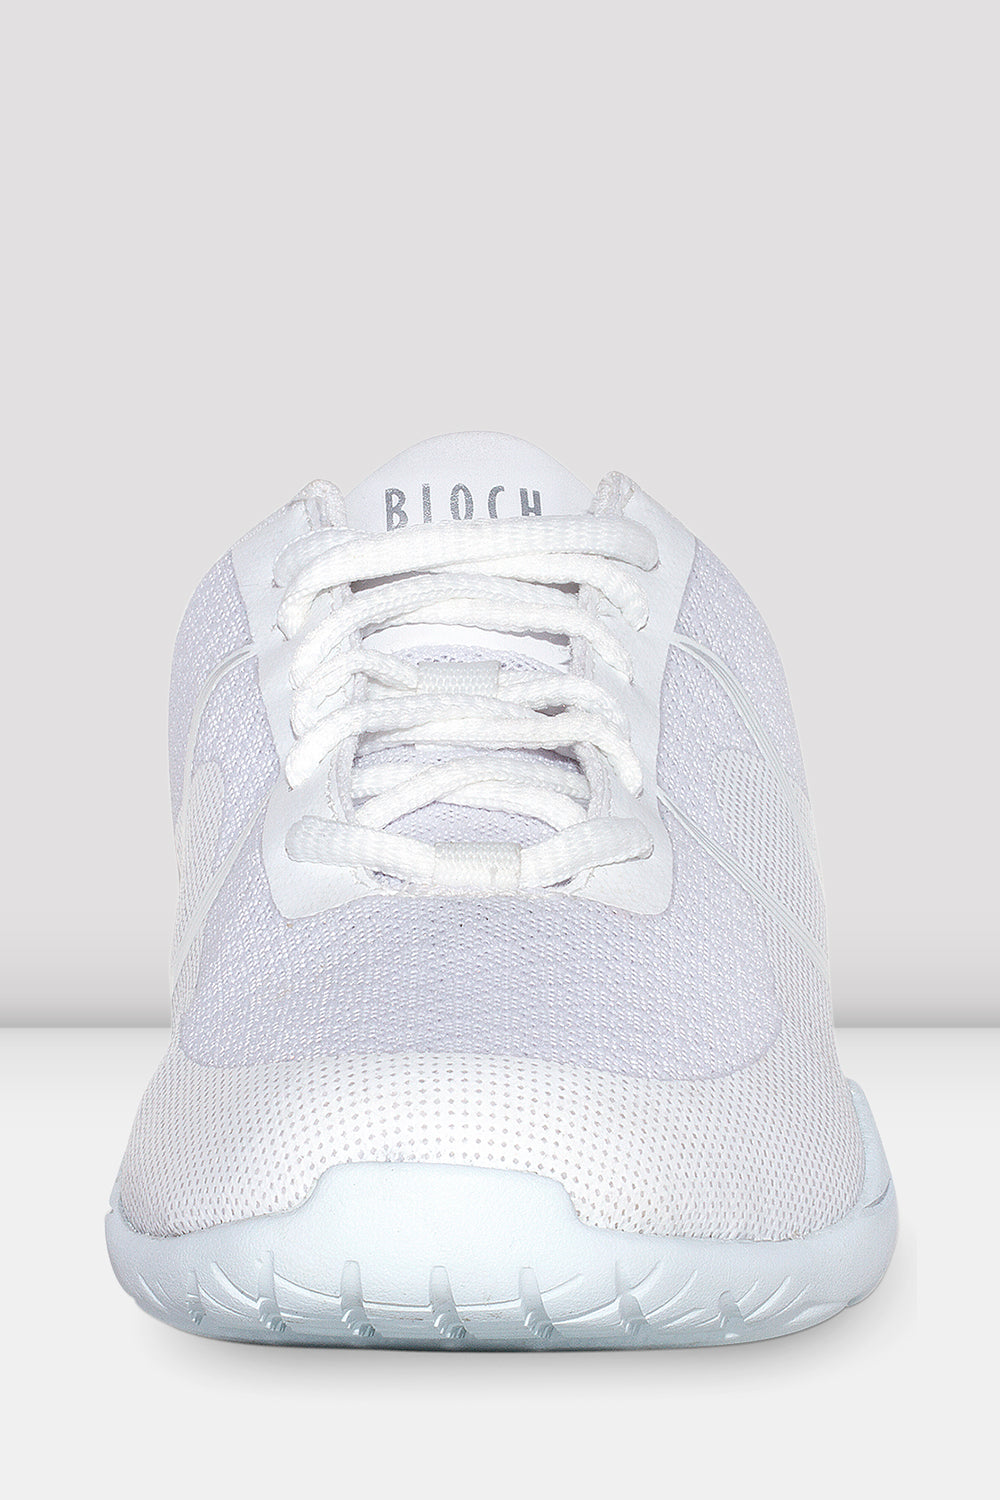 Girls Troupe Dance Sneakers - BLOCH US